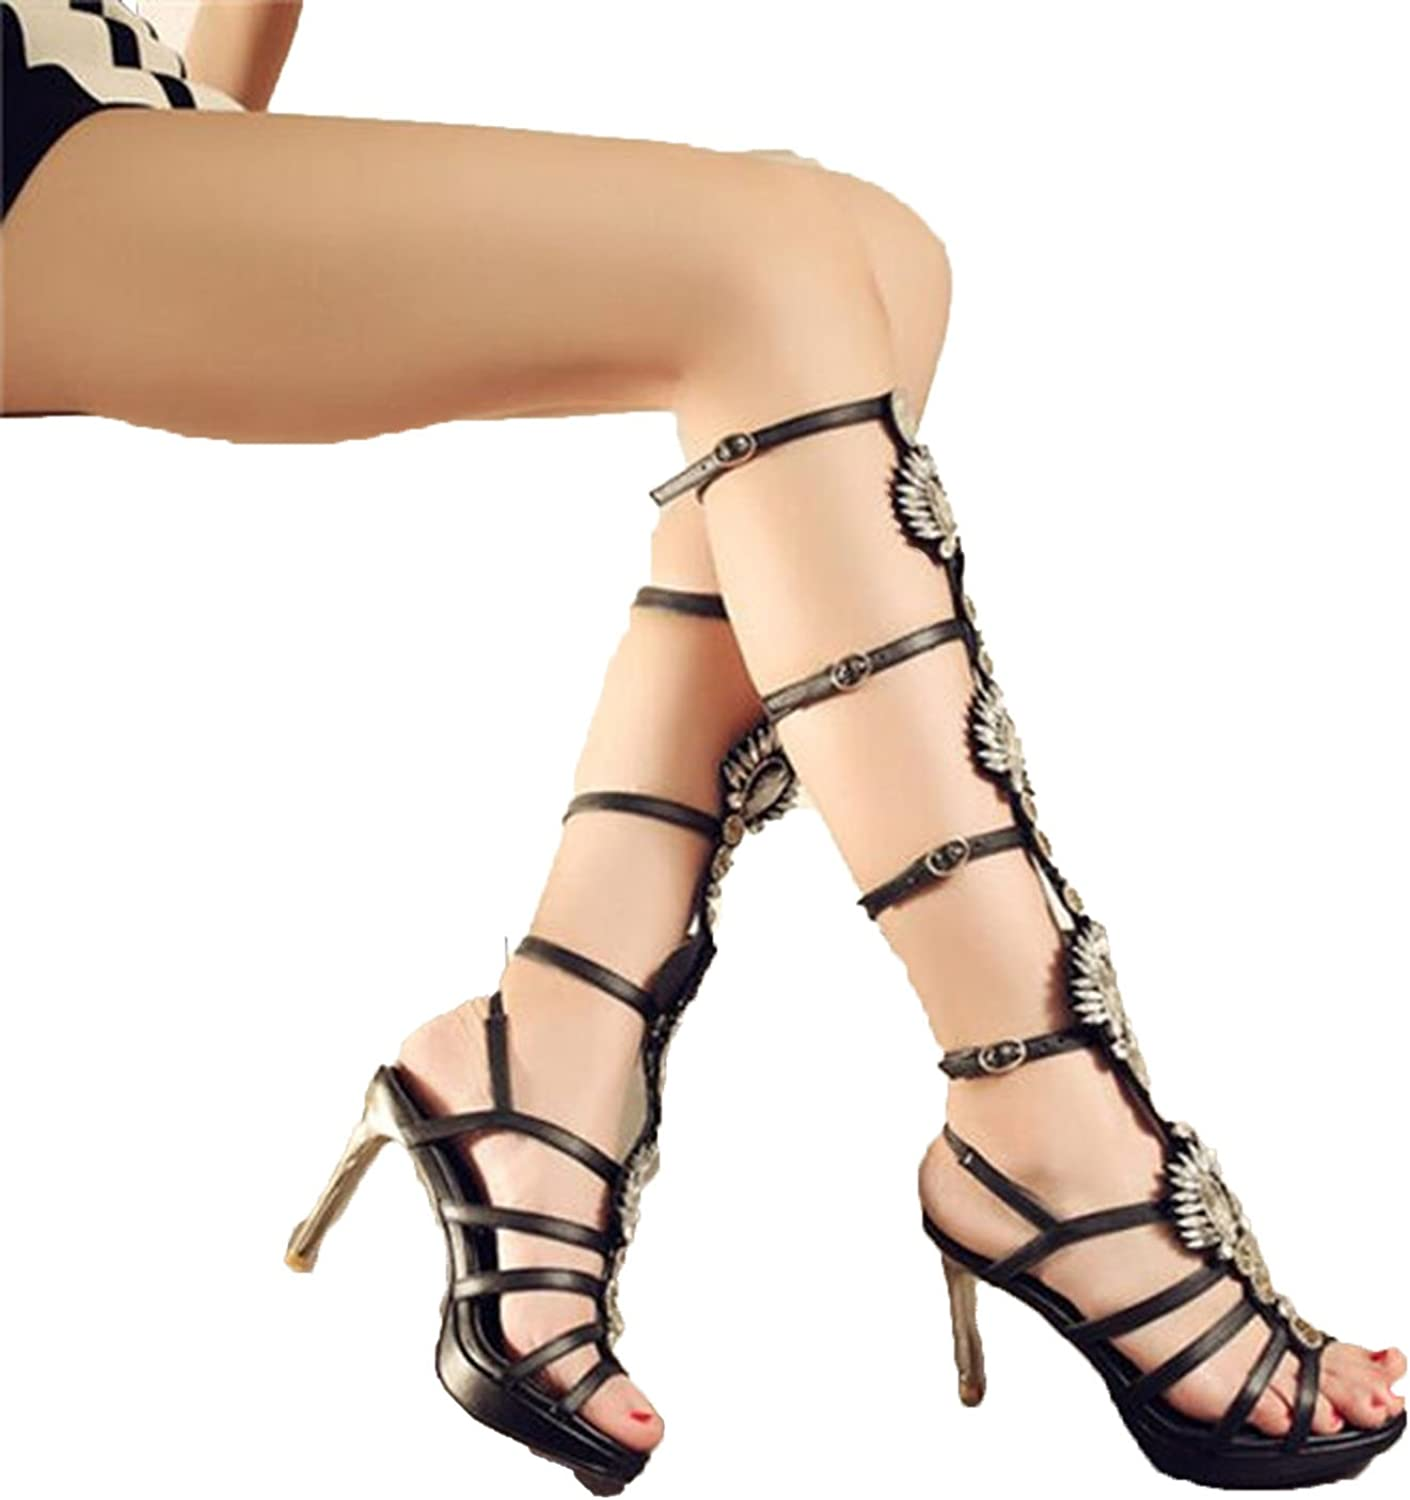 Running-sun Rhinestone Knee High Sandals Summer Women Gladiator Sandals Size 33-44